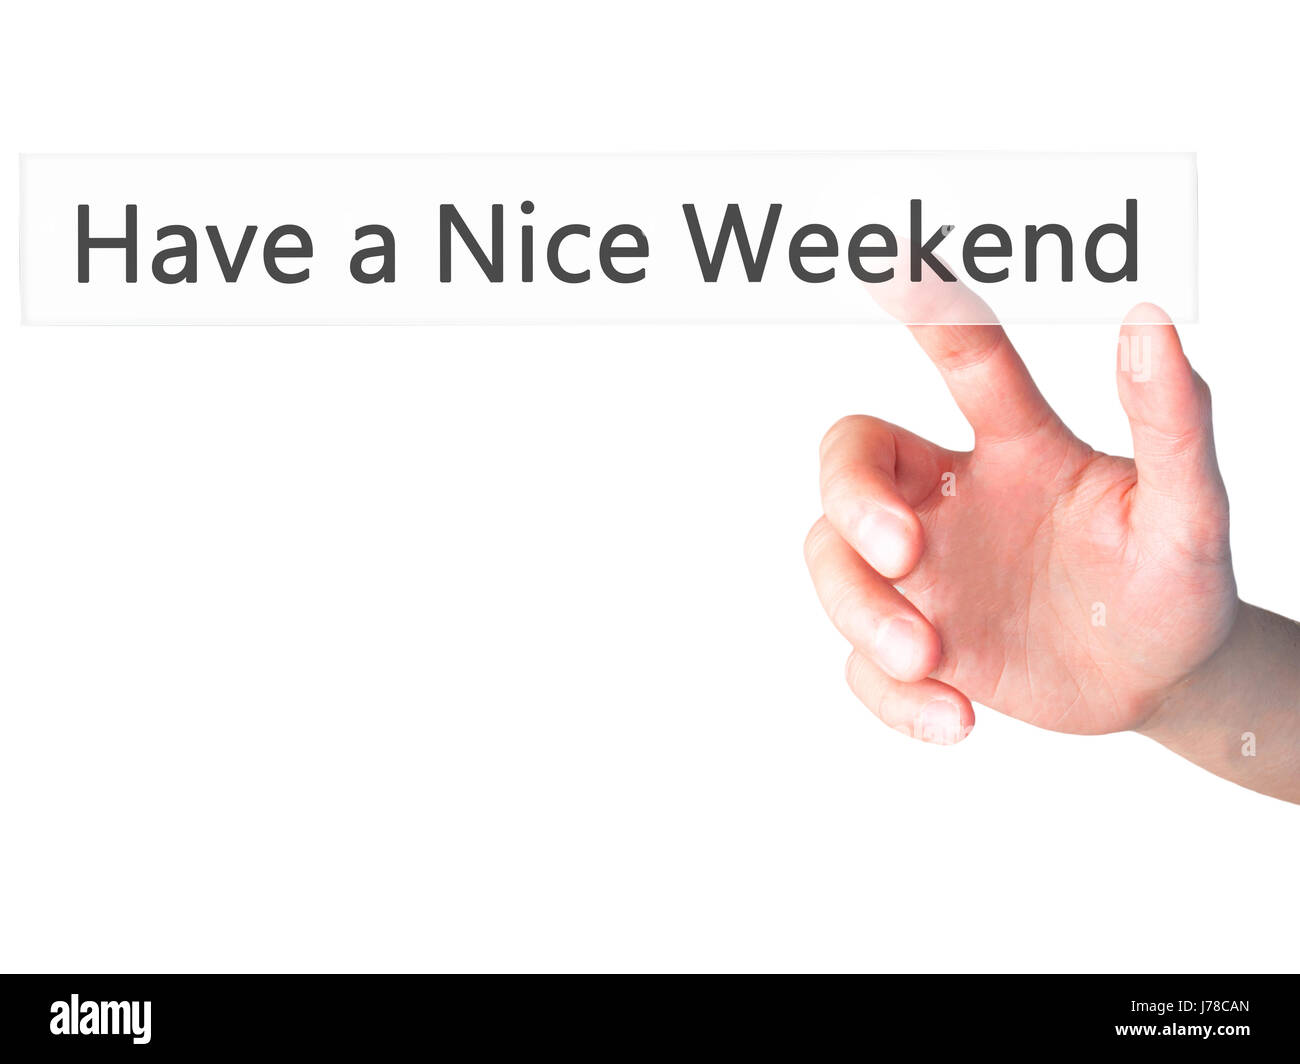 Have a Nice Weekend - Hand pressing a button on blurred background concept . Business, technology, internet concept. - Stock Image